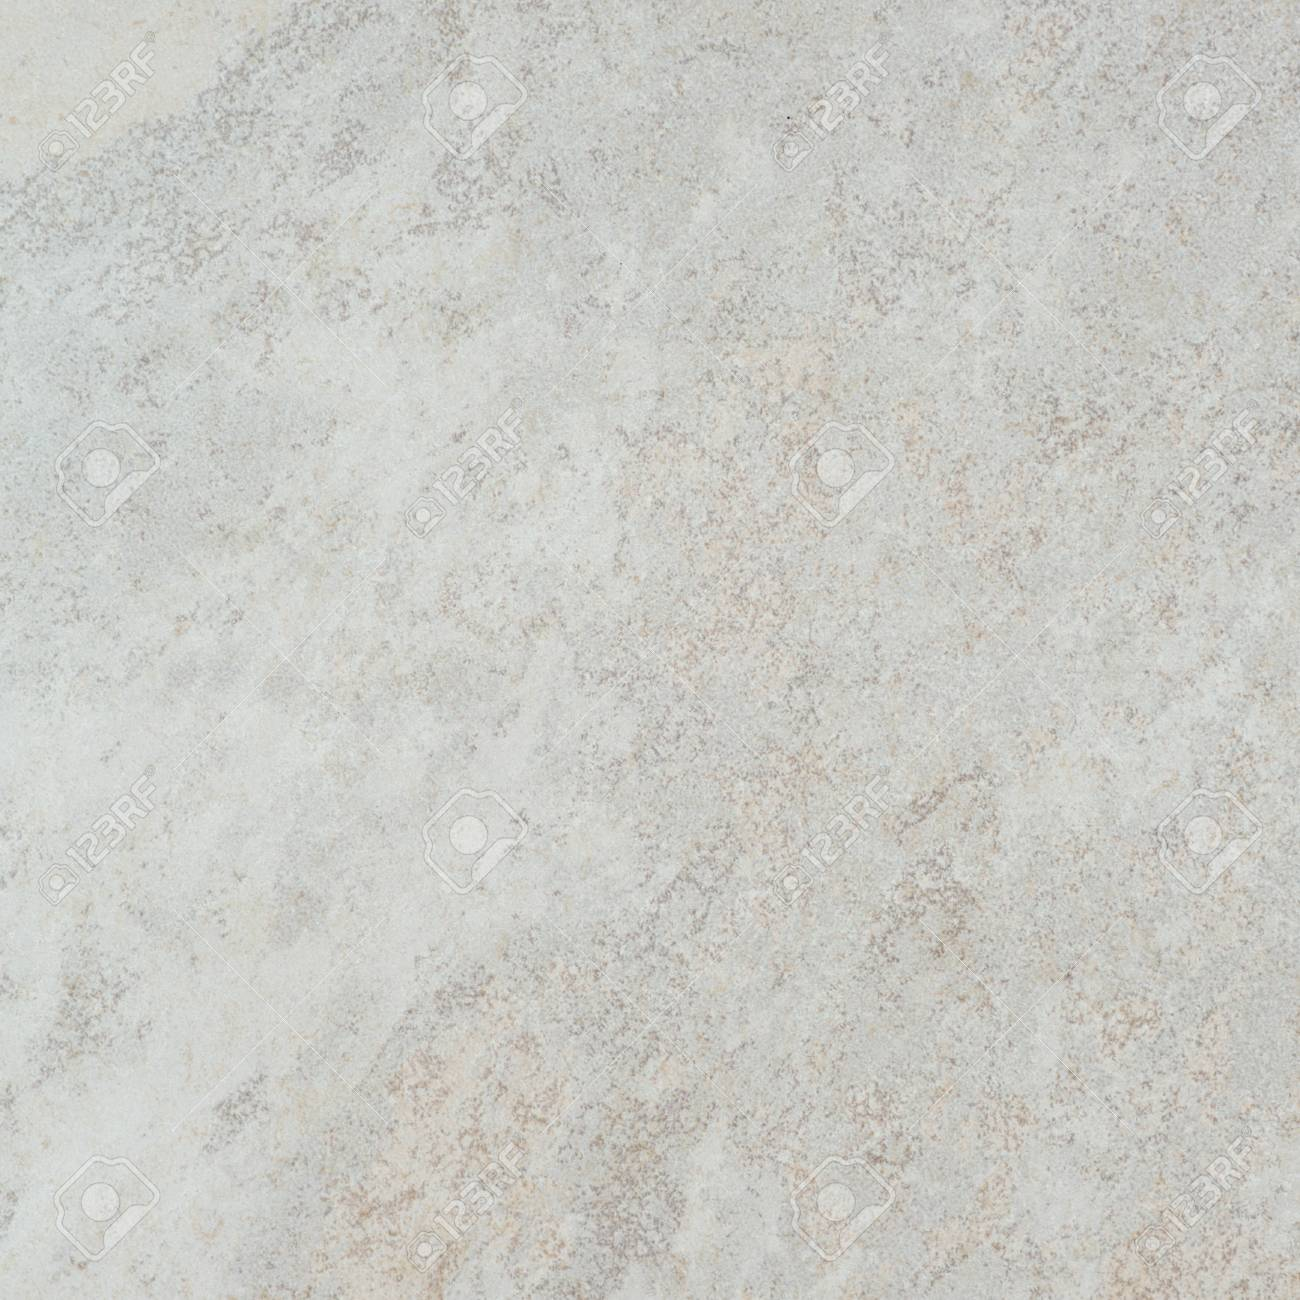 . Smooth beige concrete surface  Seamless texture